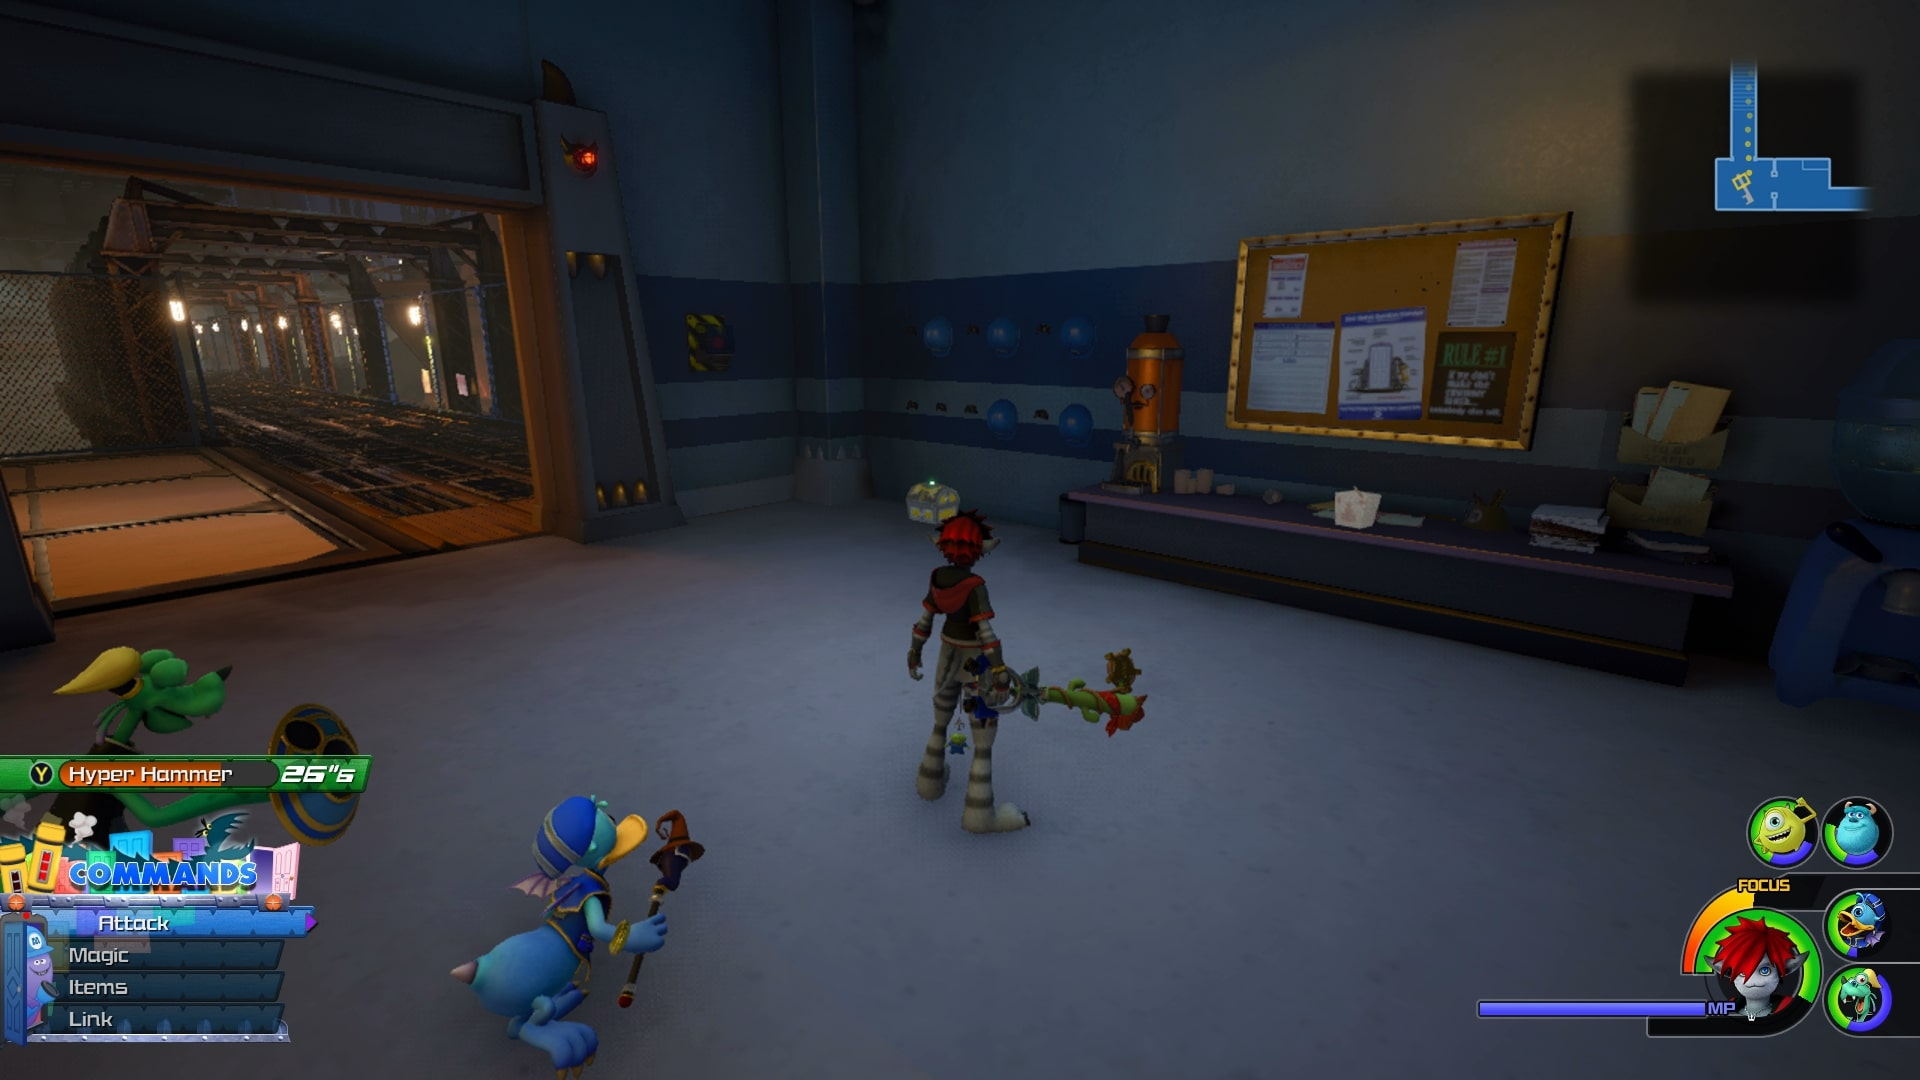 Kingdom Hearts 3 Damascus Farming Location What Is It Used For